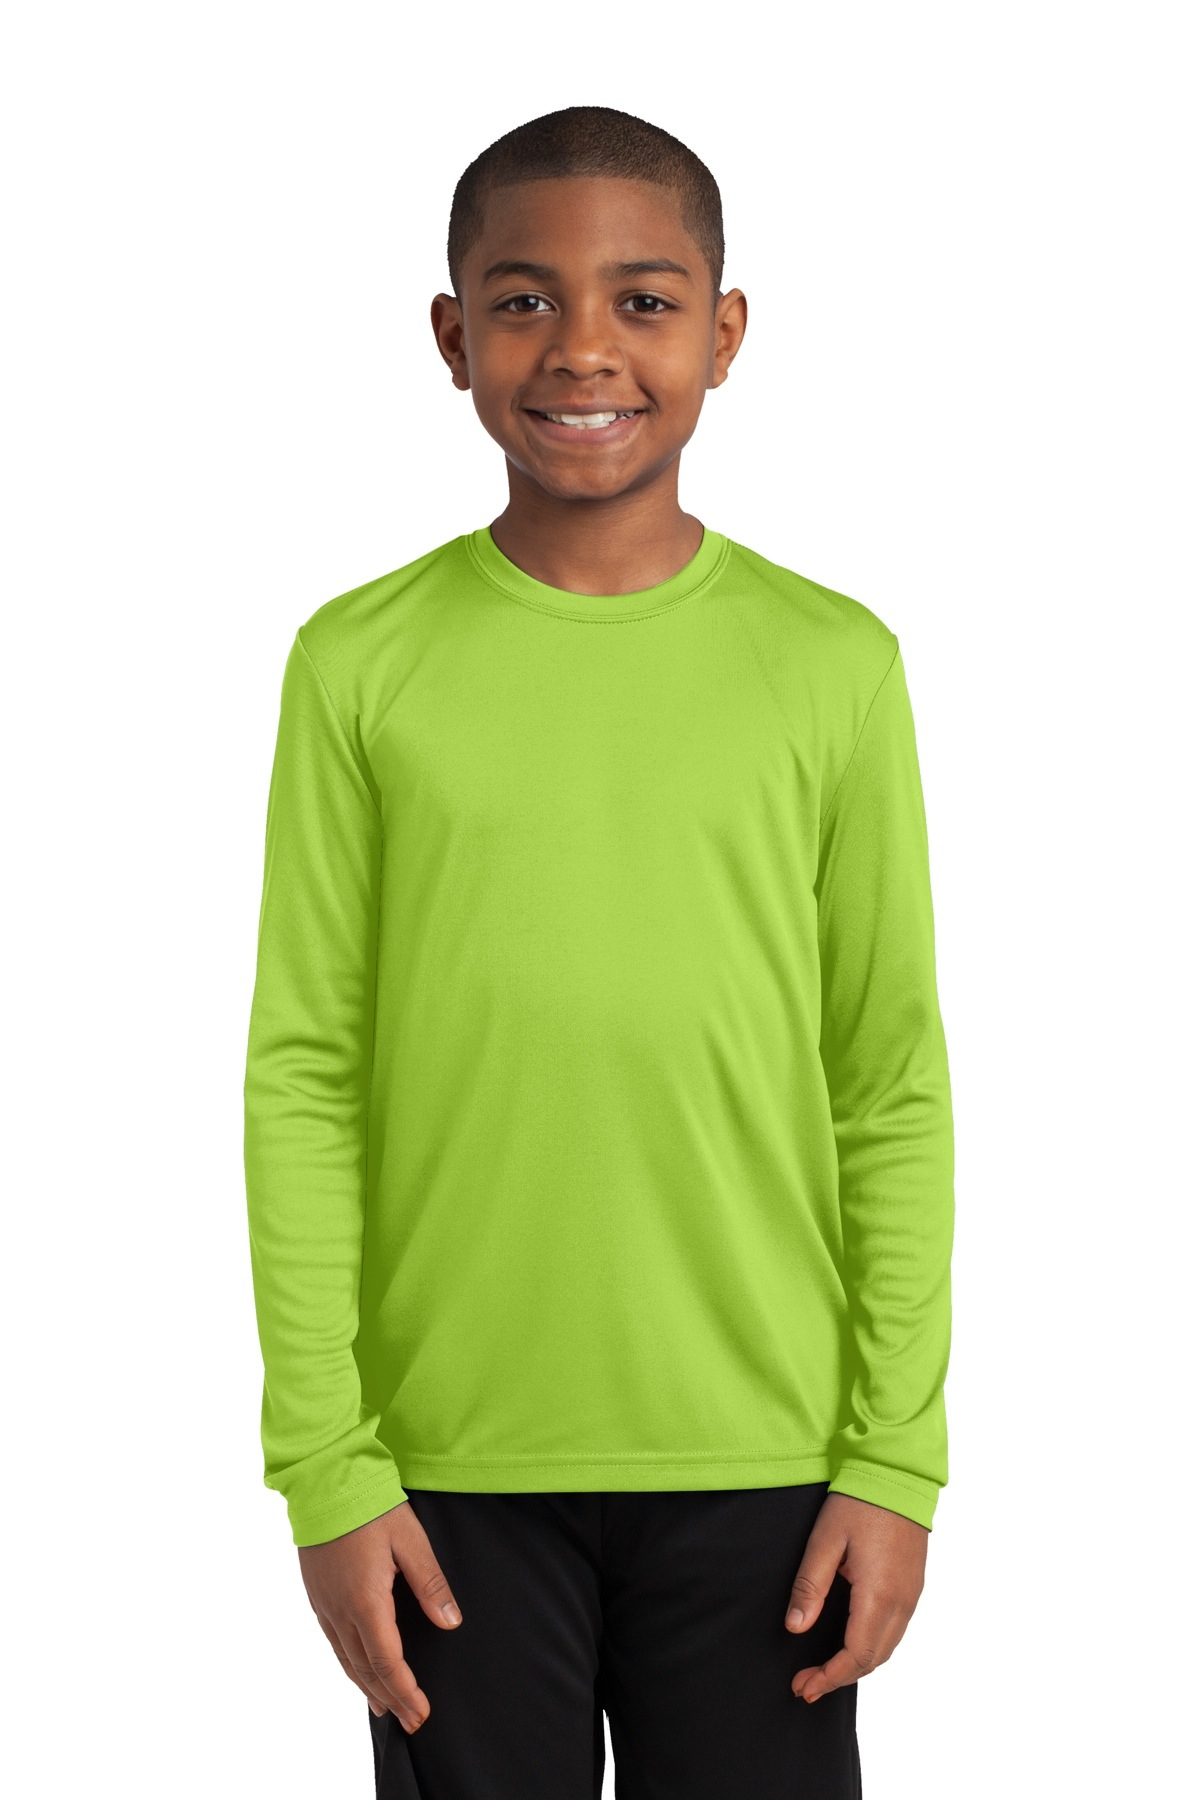 YST350LS Sport-Tek Youth Long Sleeve PosiCharge Competitor Tee